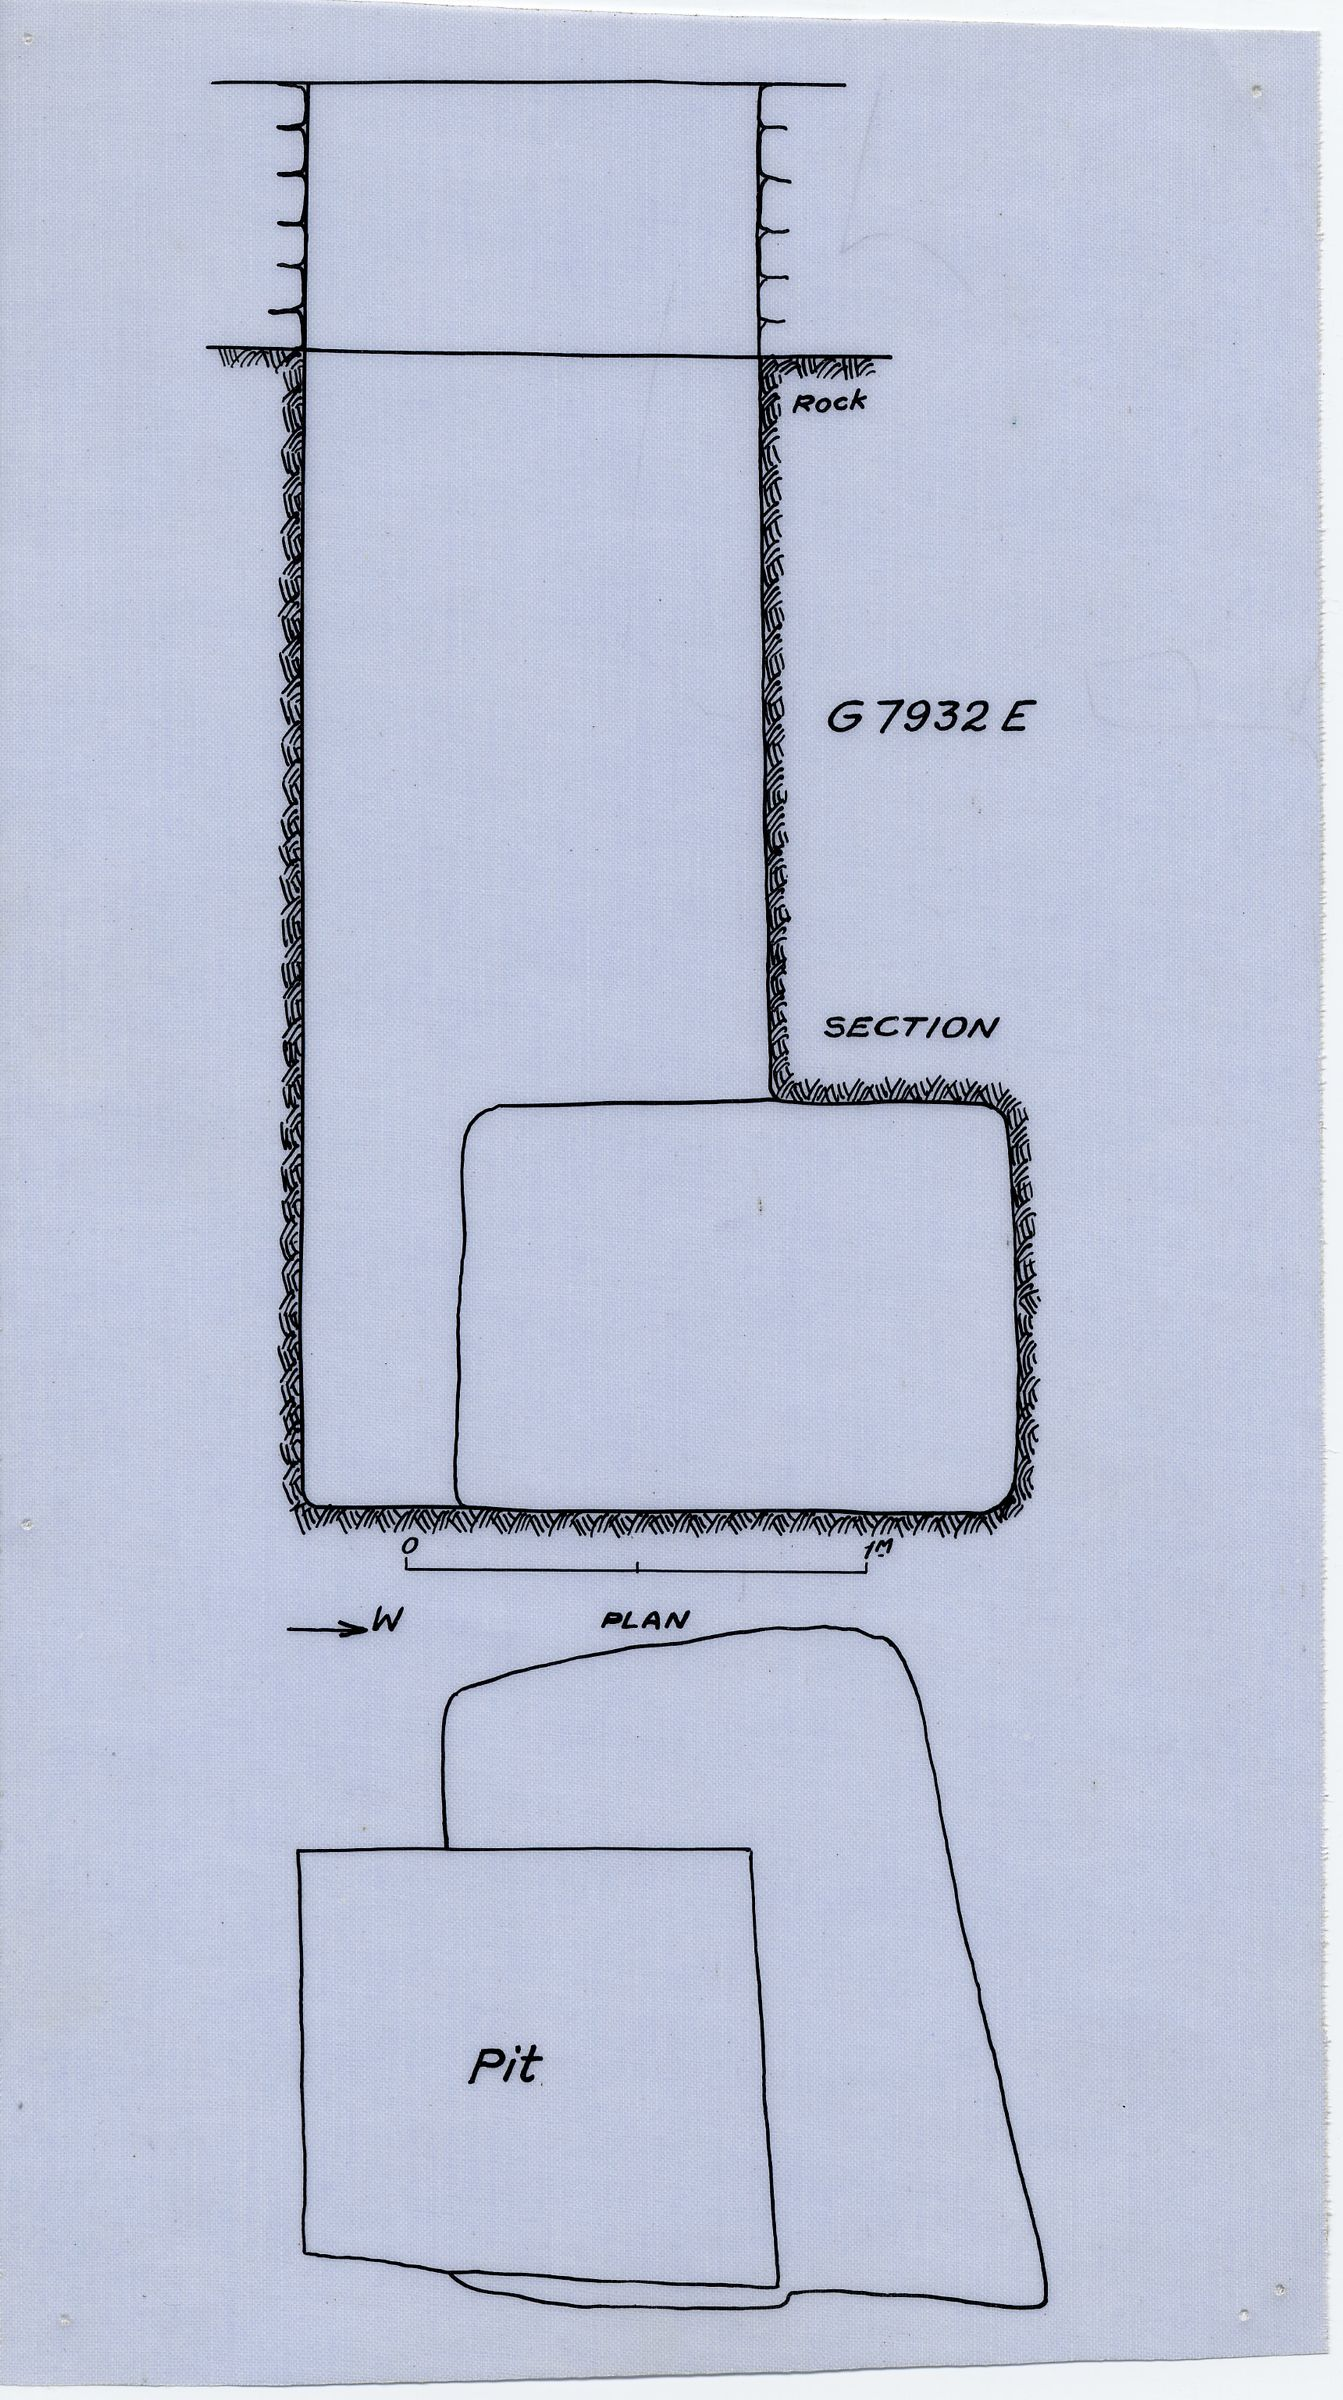 Maps and plans: G 7932, Shaft E